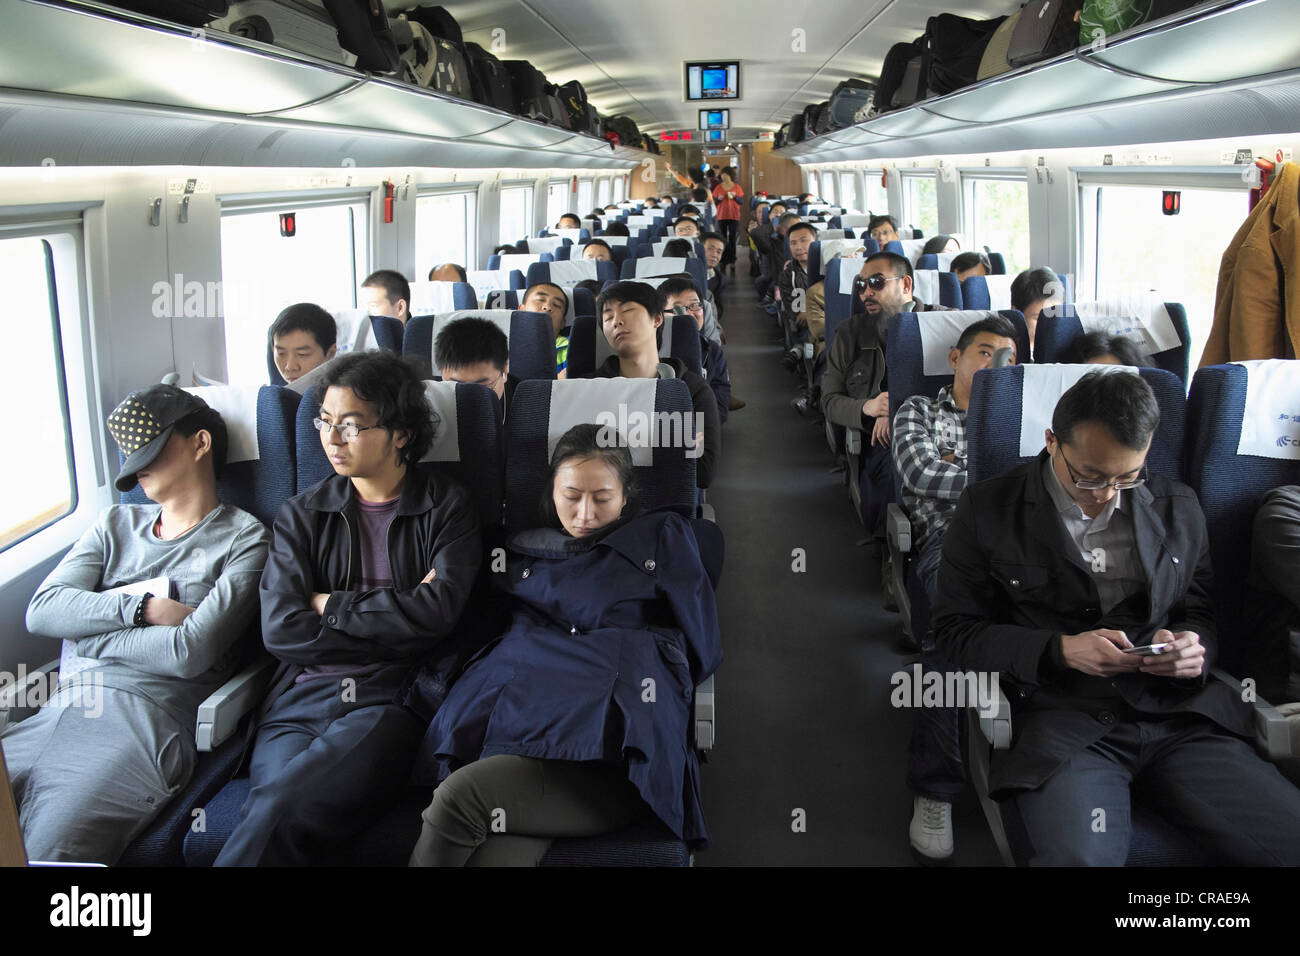 Interior of busy economy carriage on new Beijing to Shanghai high-speed railway in China - Stock Image